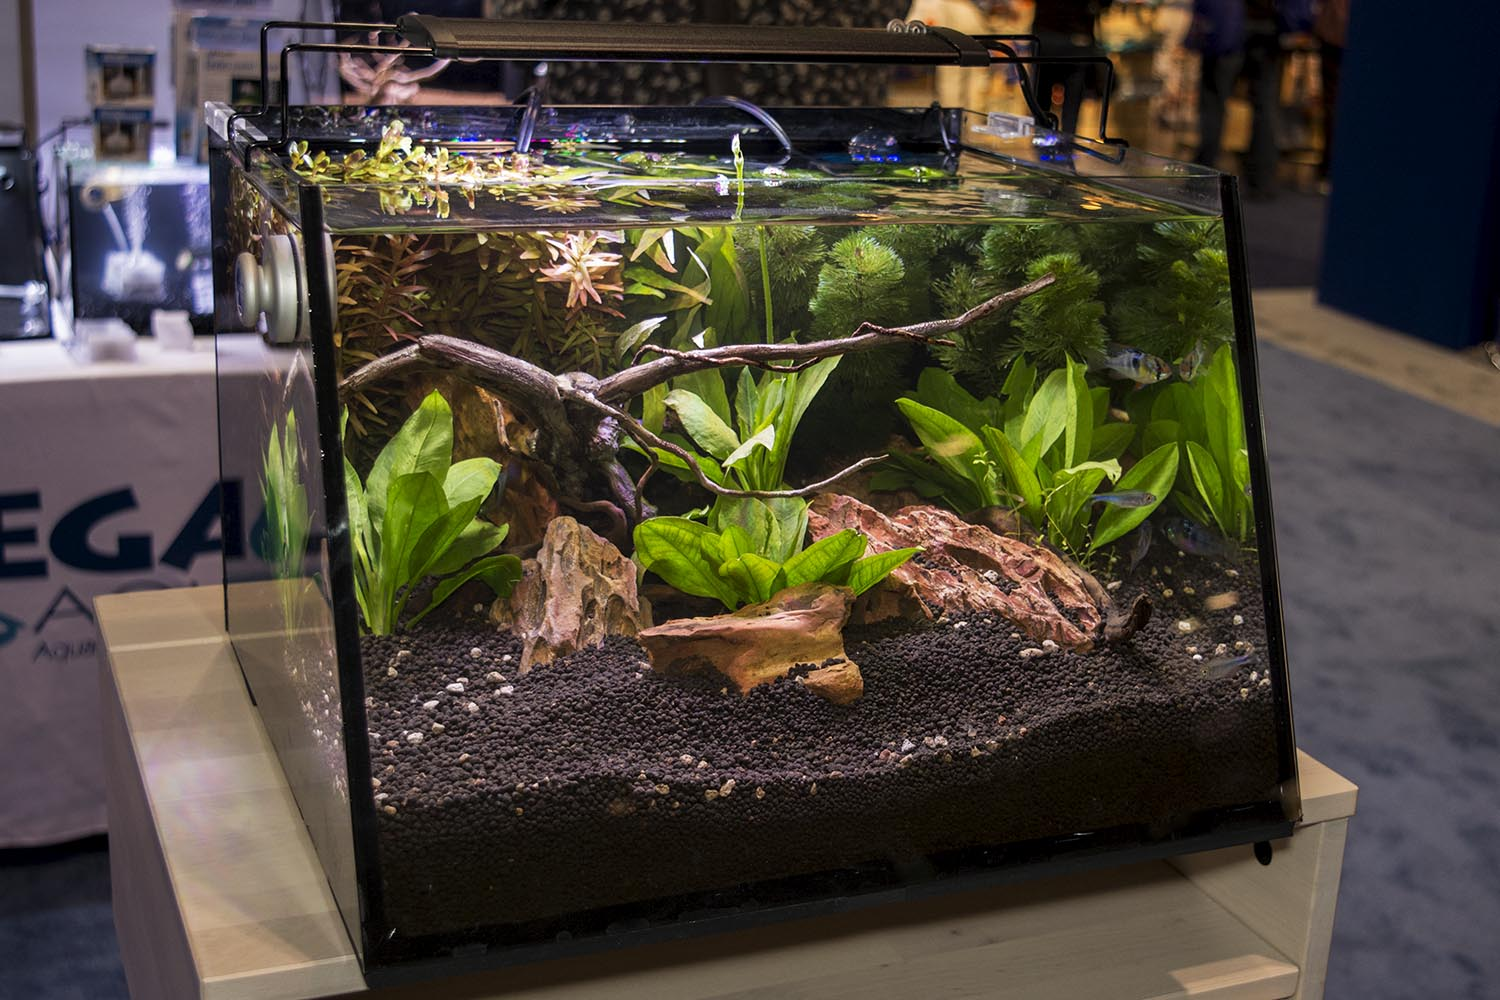 Another new product for Lifegard, the Full View aquarium kit. From the looks of things at this show, sloped is the new curved for glass aquariums.